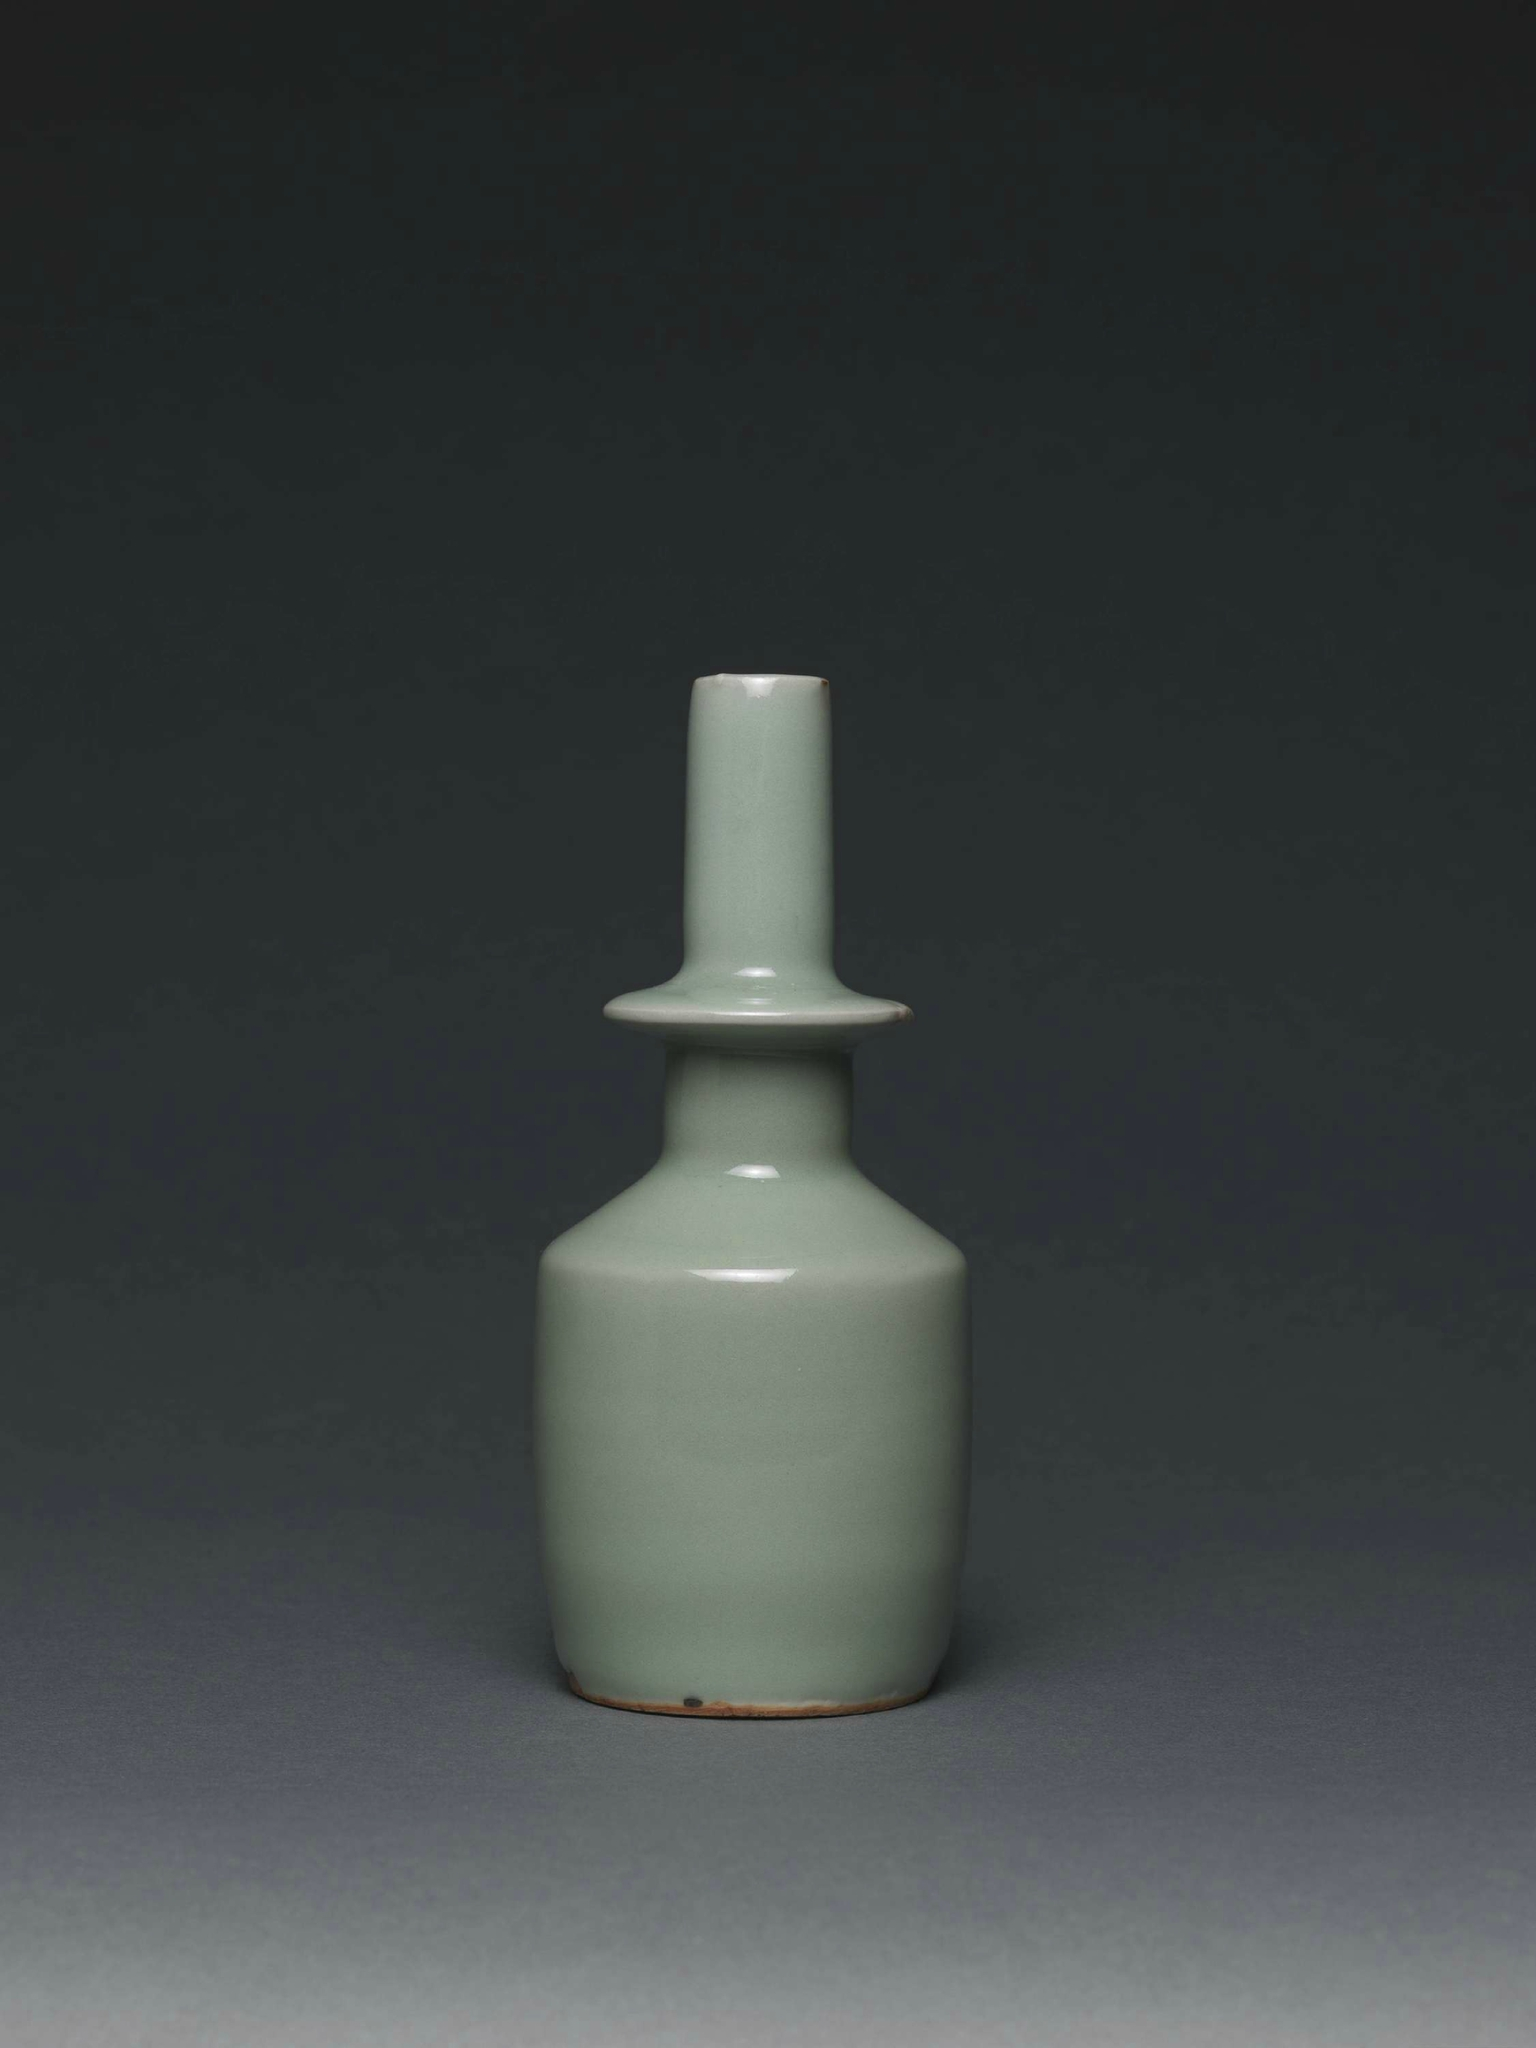 Longquan celadon collared water sprinkler ('daji ping'), China, Longquan kilns, Zhejiang province, late Southern Song dynasty (1127-1279) or early Yuan dynasty (1279-1368), 13th century